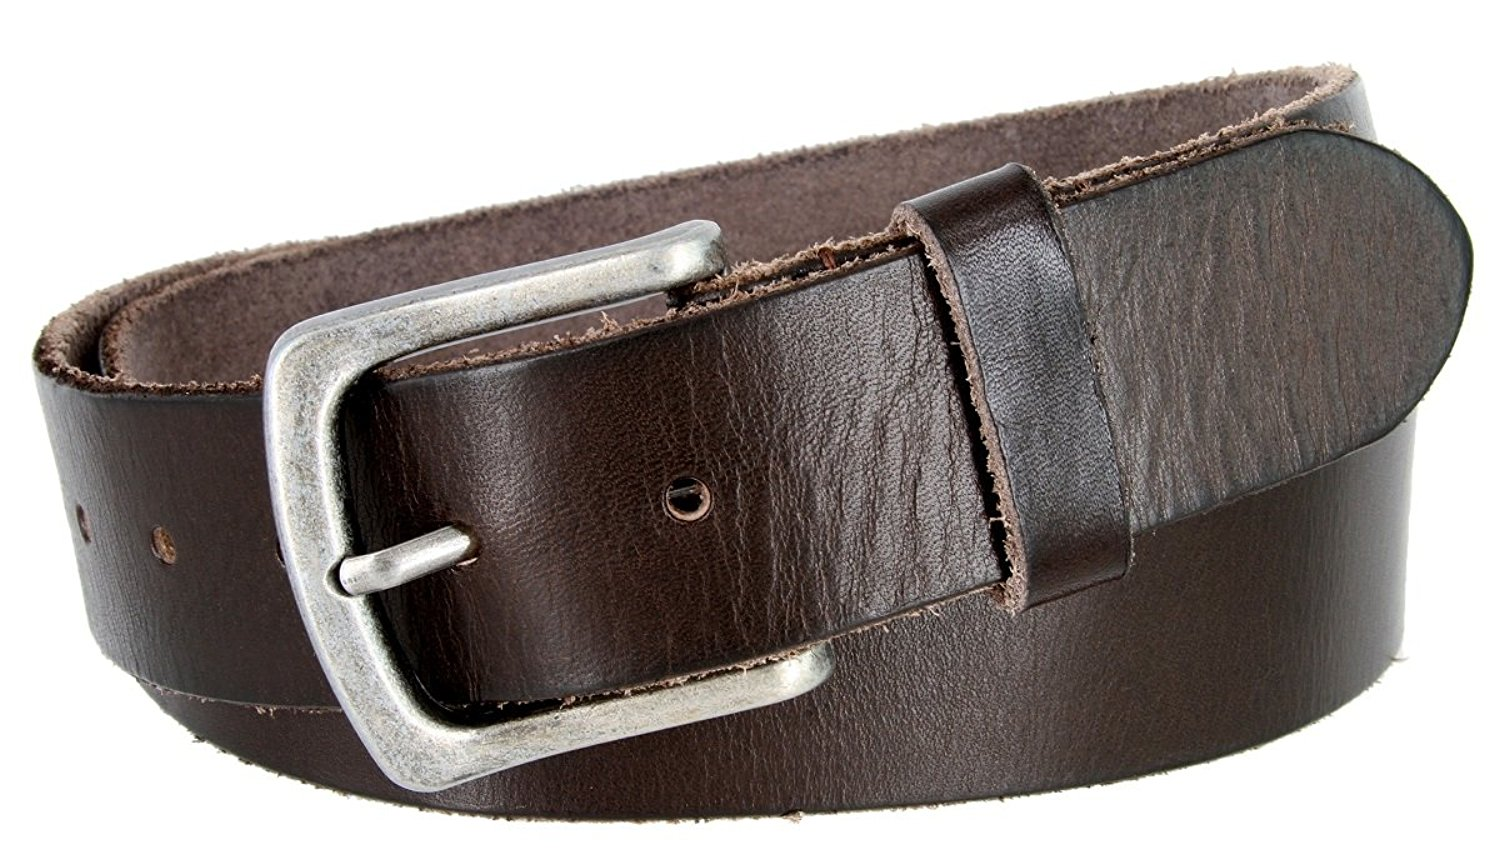 Full Grain Classic Oil-tanned Genuine Leather Casual Jean Belt for Women